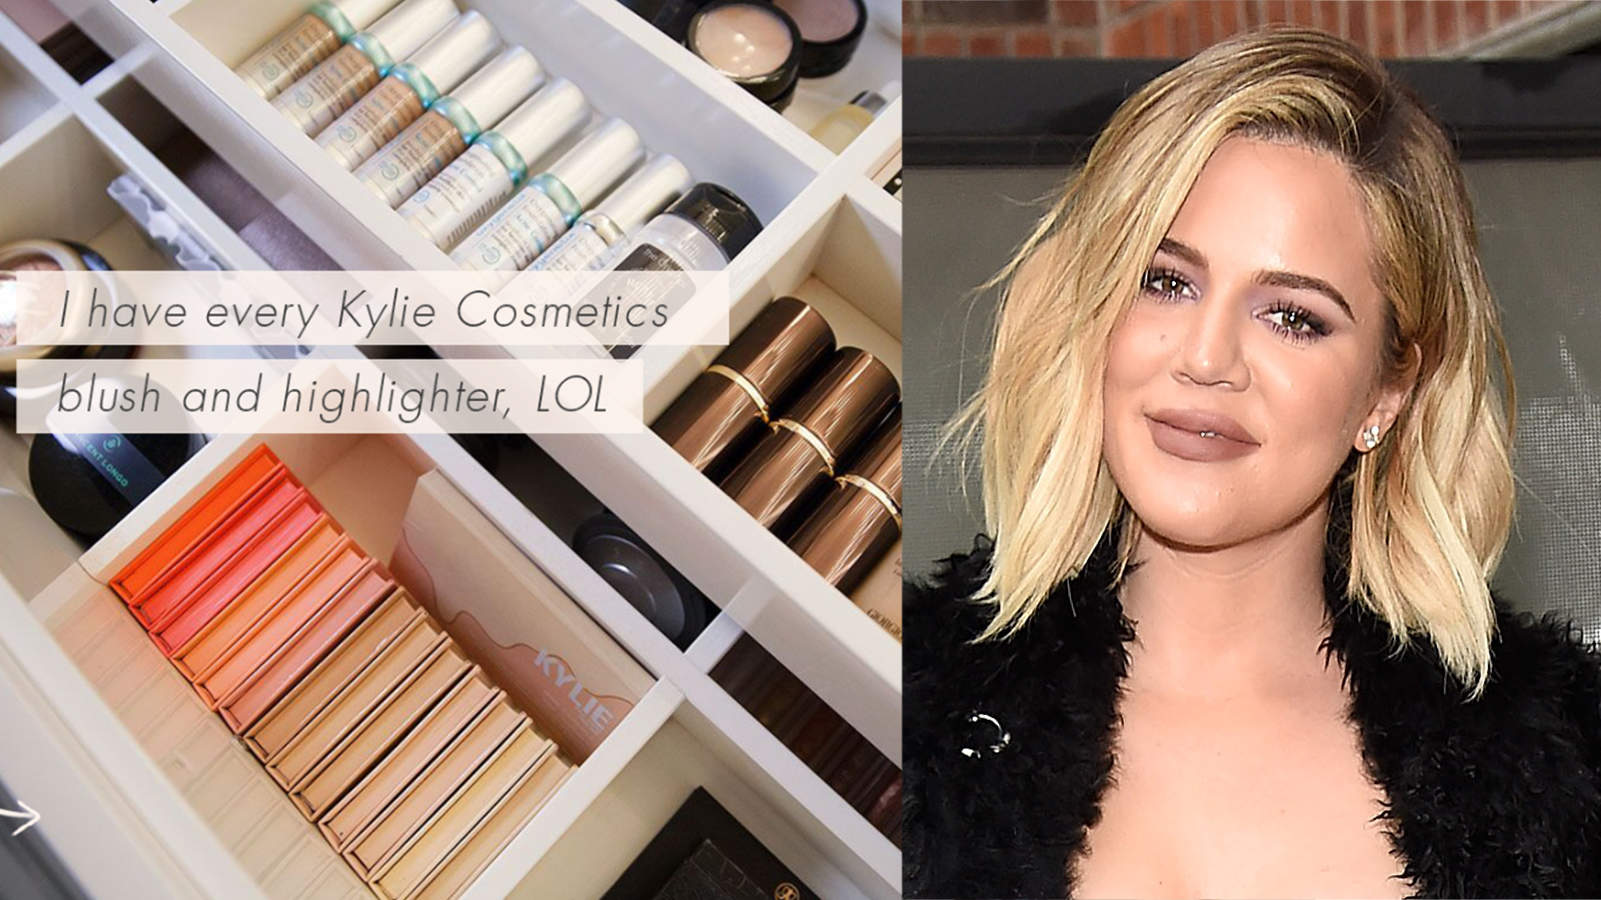 Khloé Kardashian Spills on the Beauty Products She Actually Uses